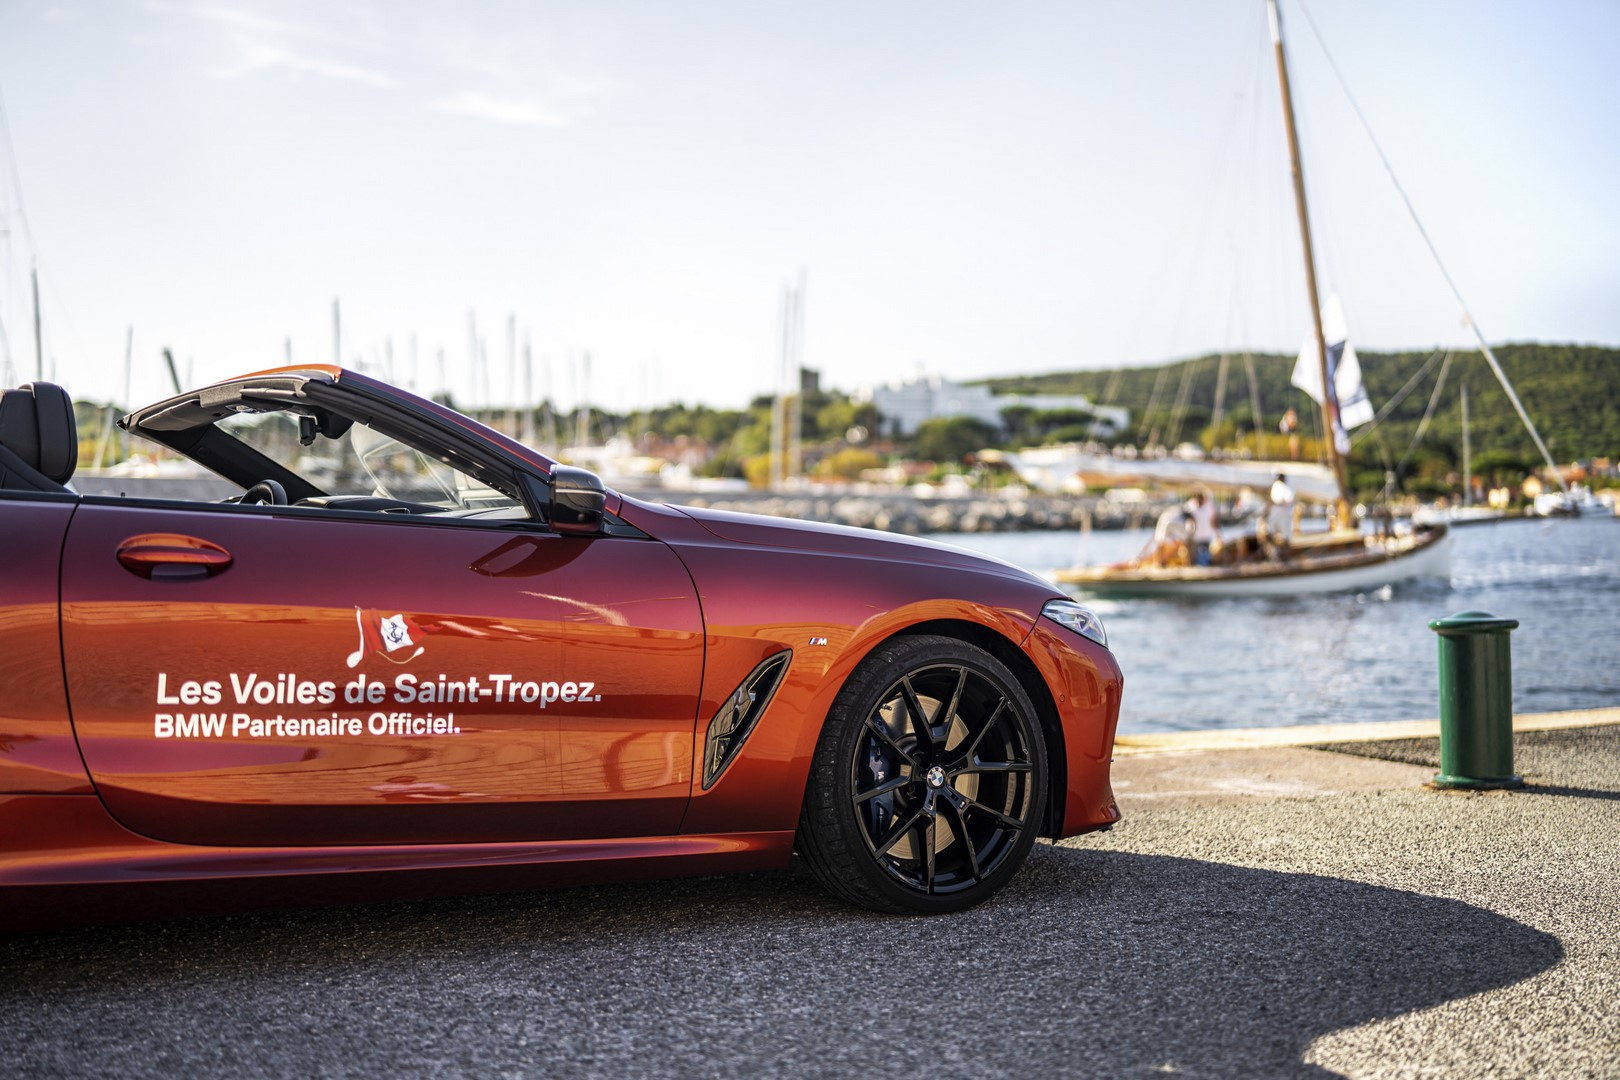 BMW M and the Les Voiles de Saint-Tropez